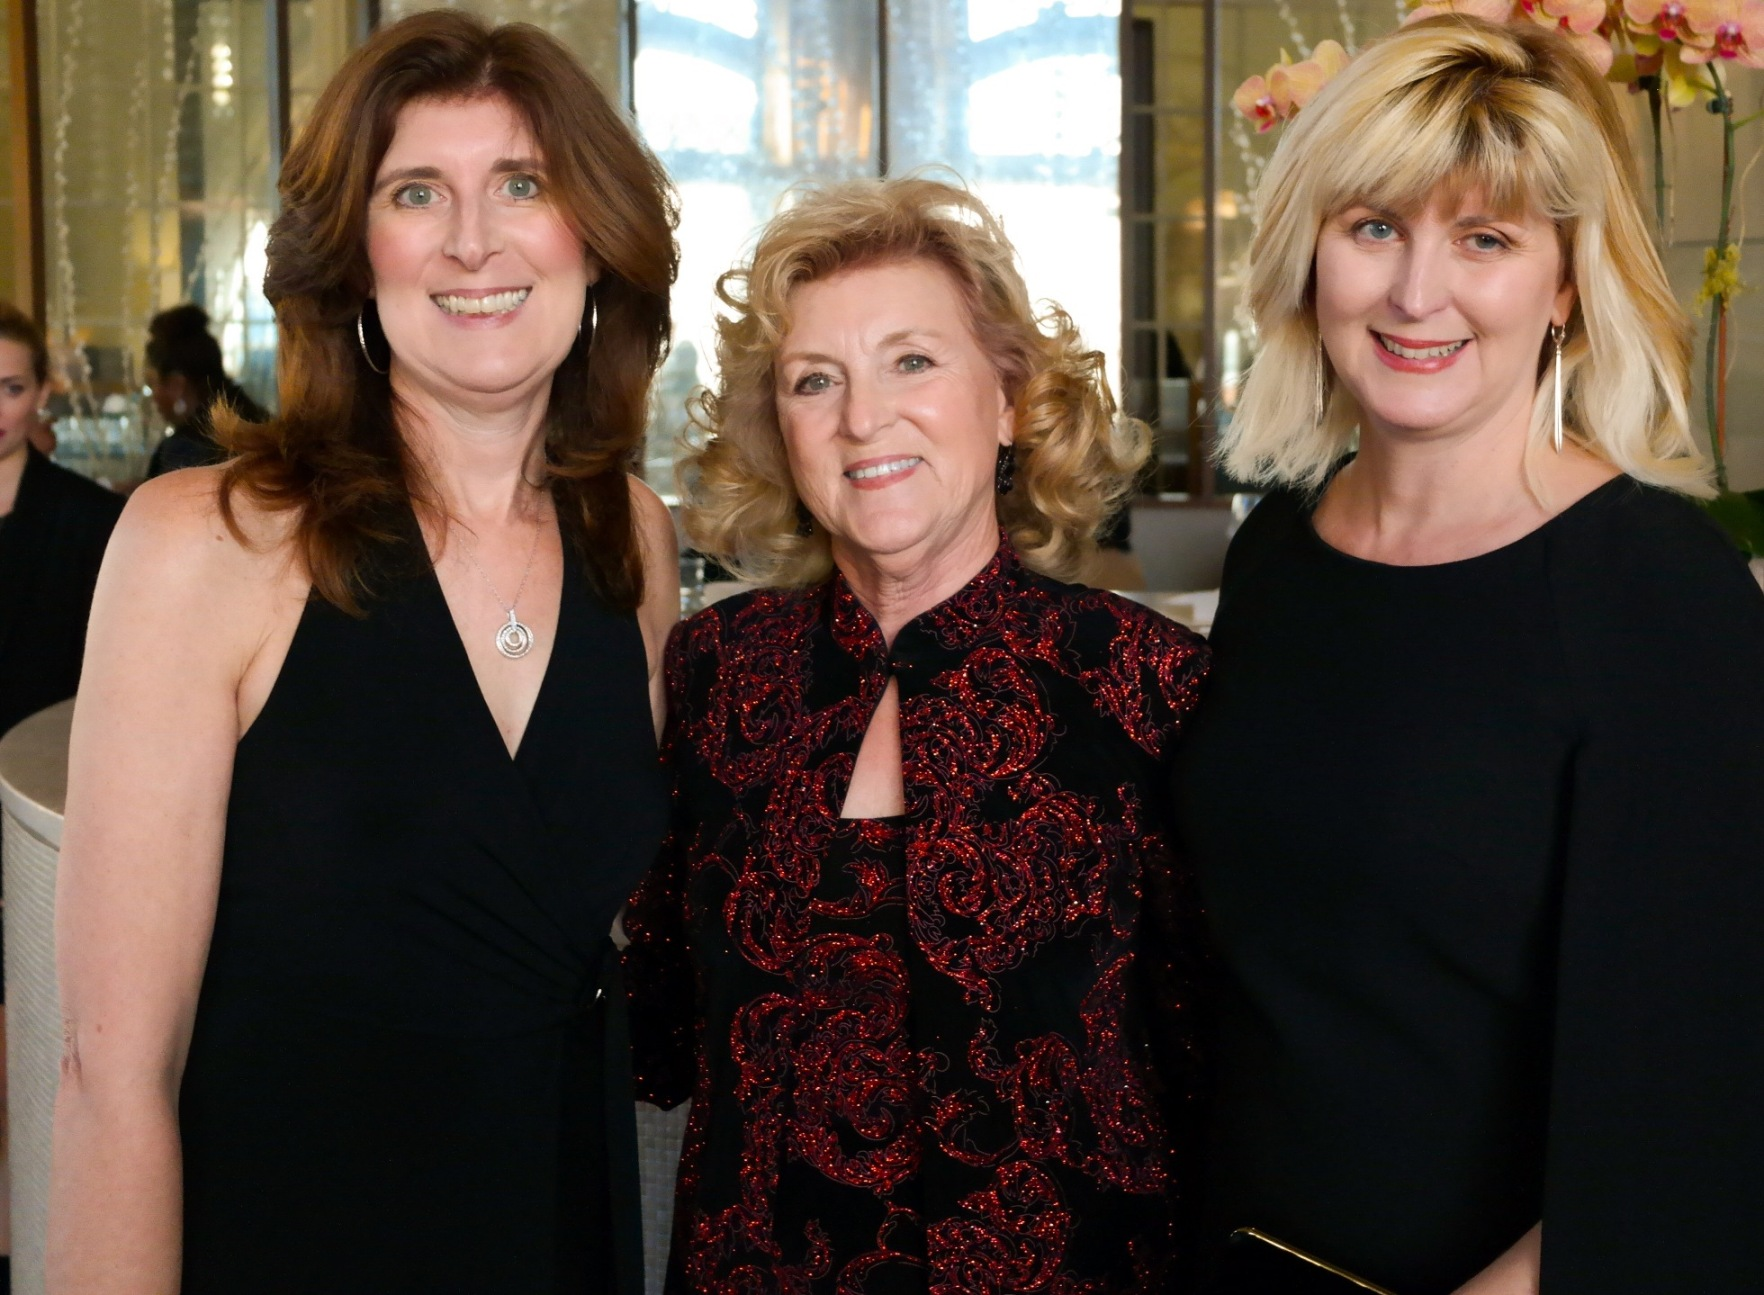 Fashion & Family: my stylish sister Denise Schwemmer and style icon mom Lorraine Naughton celebrated with me (Doreen Creede / Style Maniac)at the XIX Most Fashionable Women event.(PHOTO: Erick Campos/Founder Magazine)